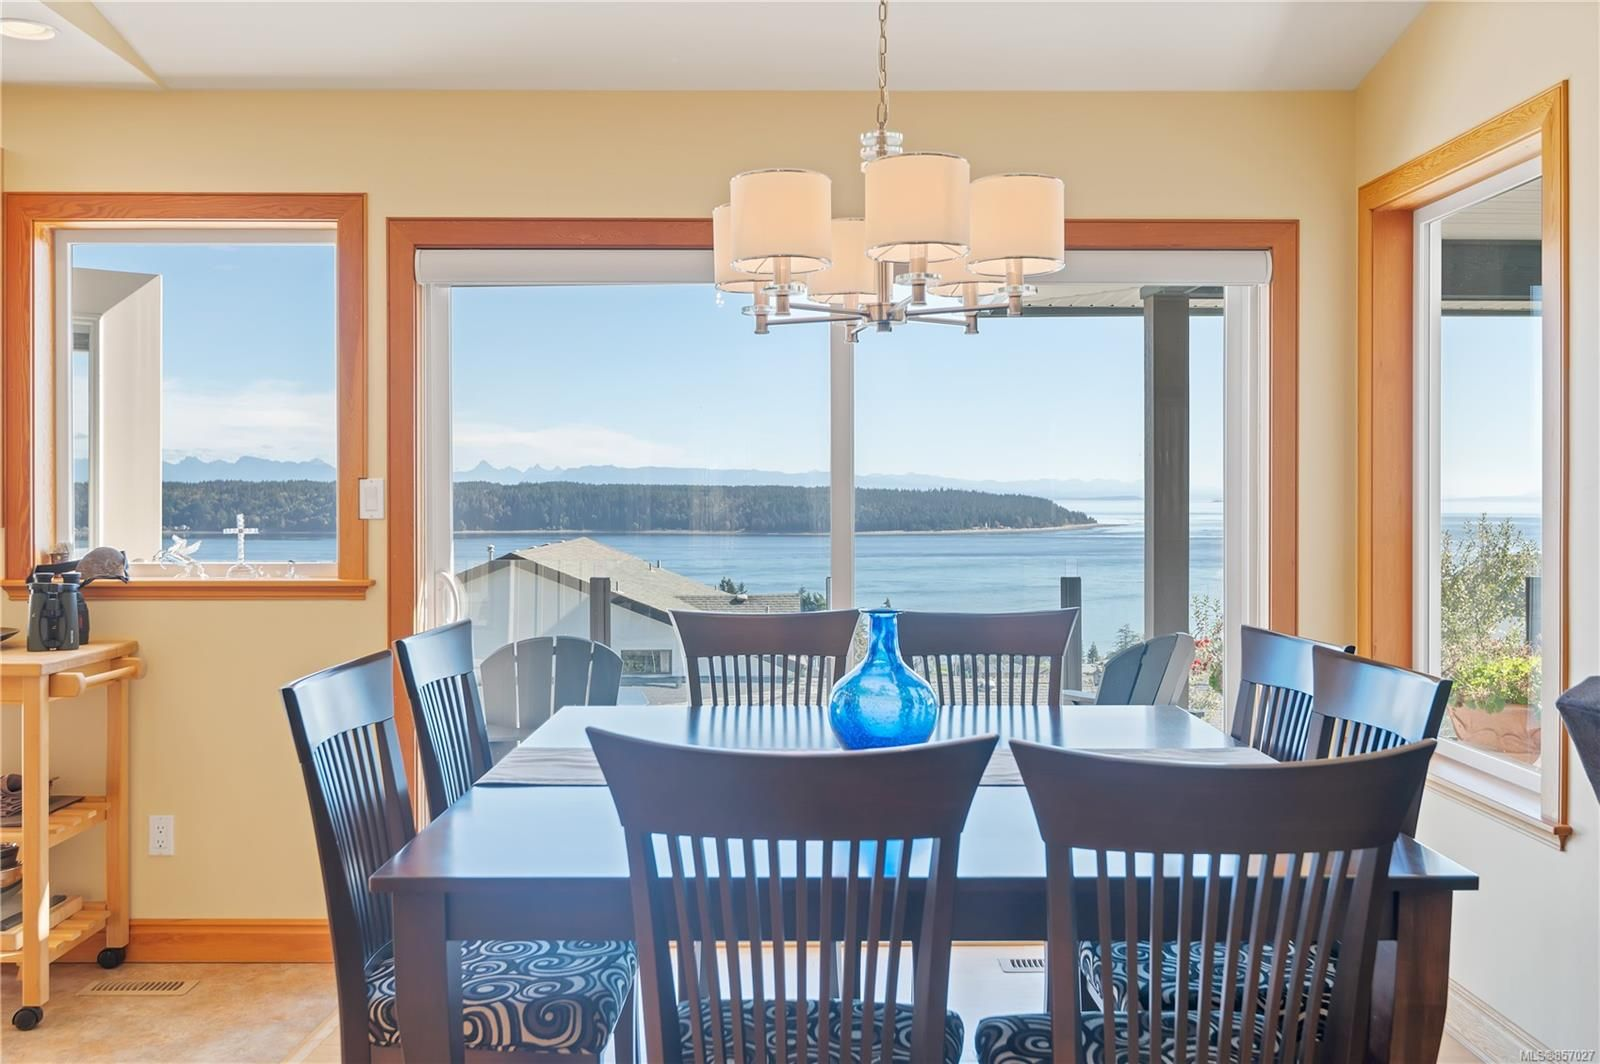 Photo 10: Photos: 253 S Alder St in : CR Campbell River South House for sale (Campbell River)  : MLS®# 857027